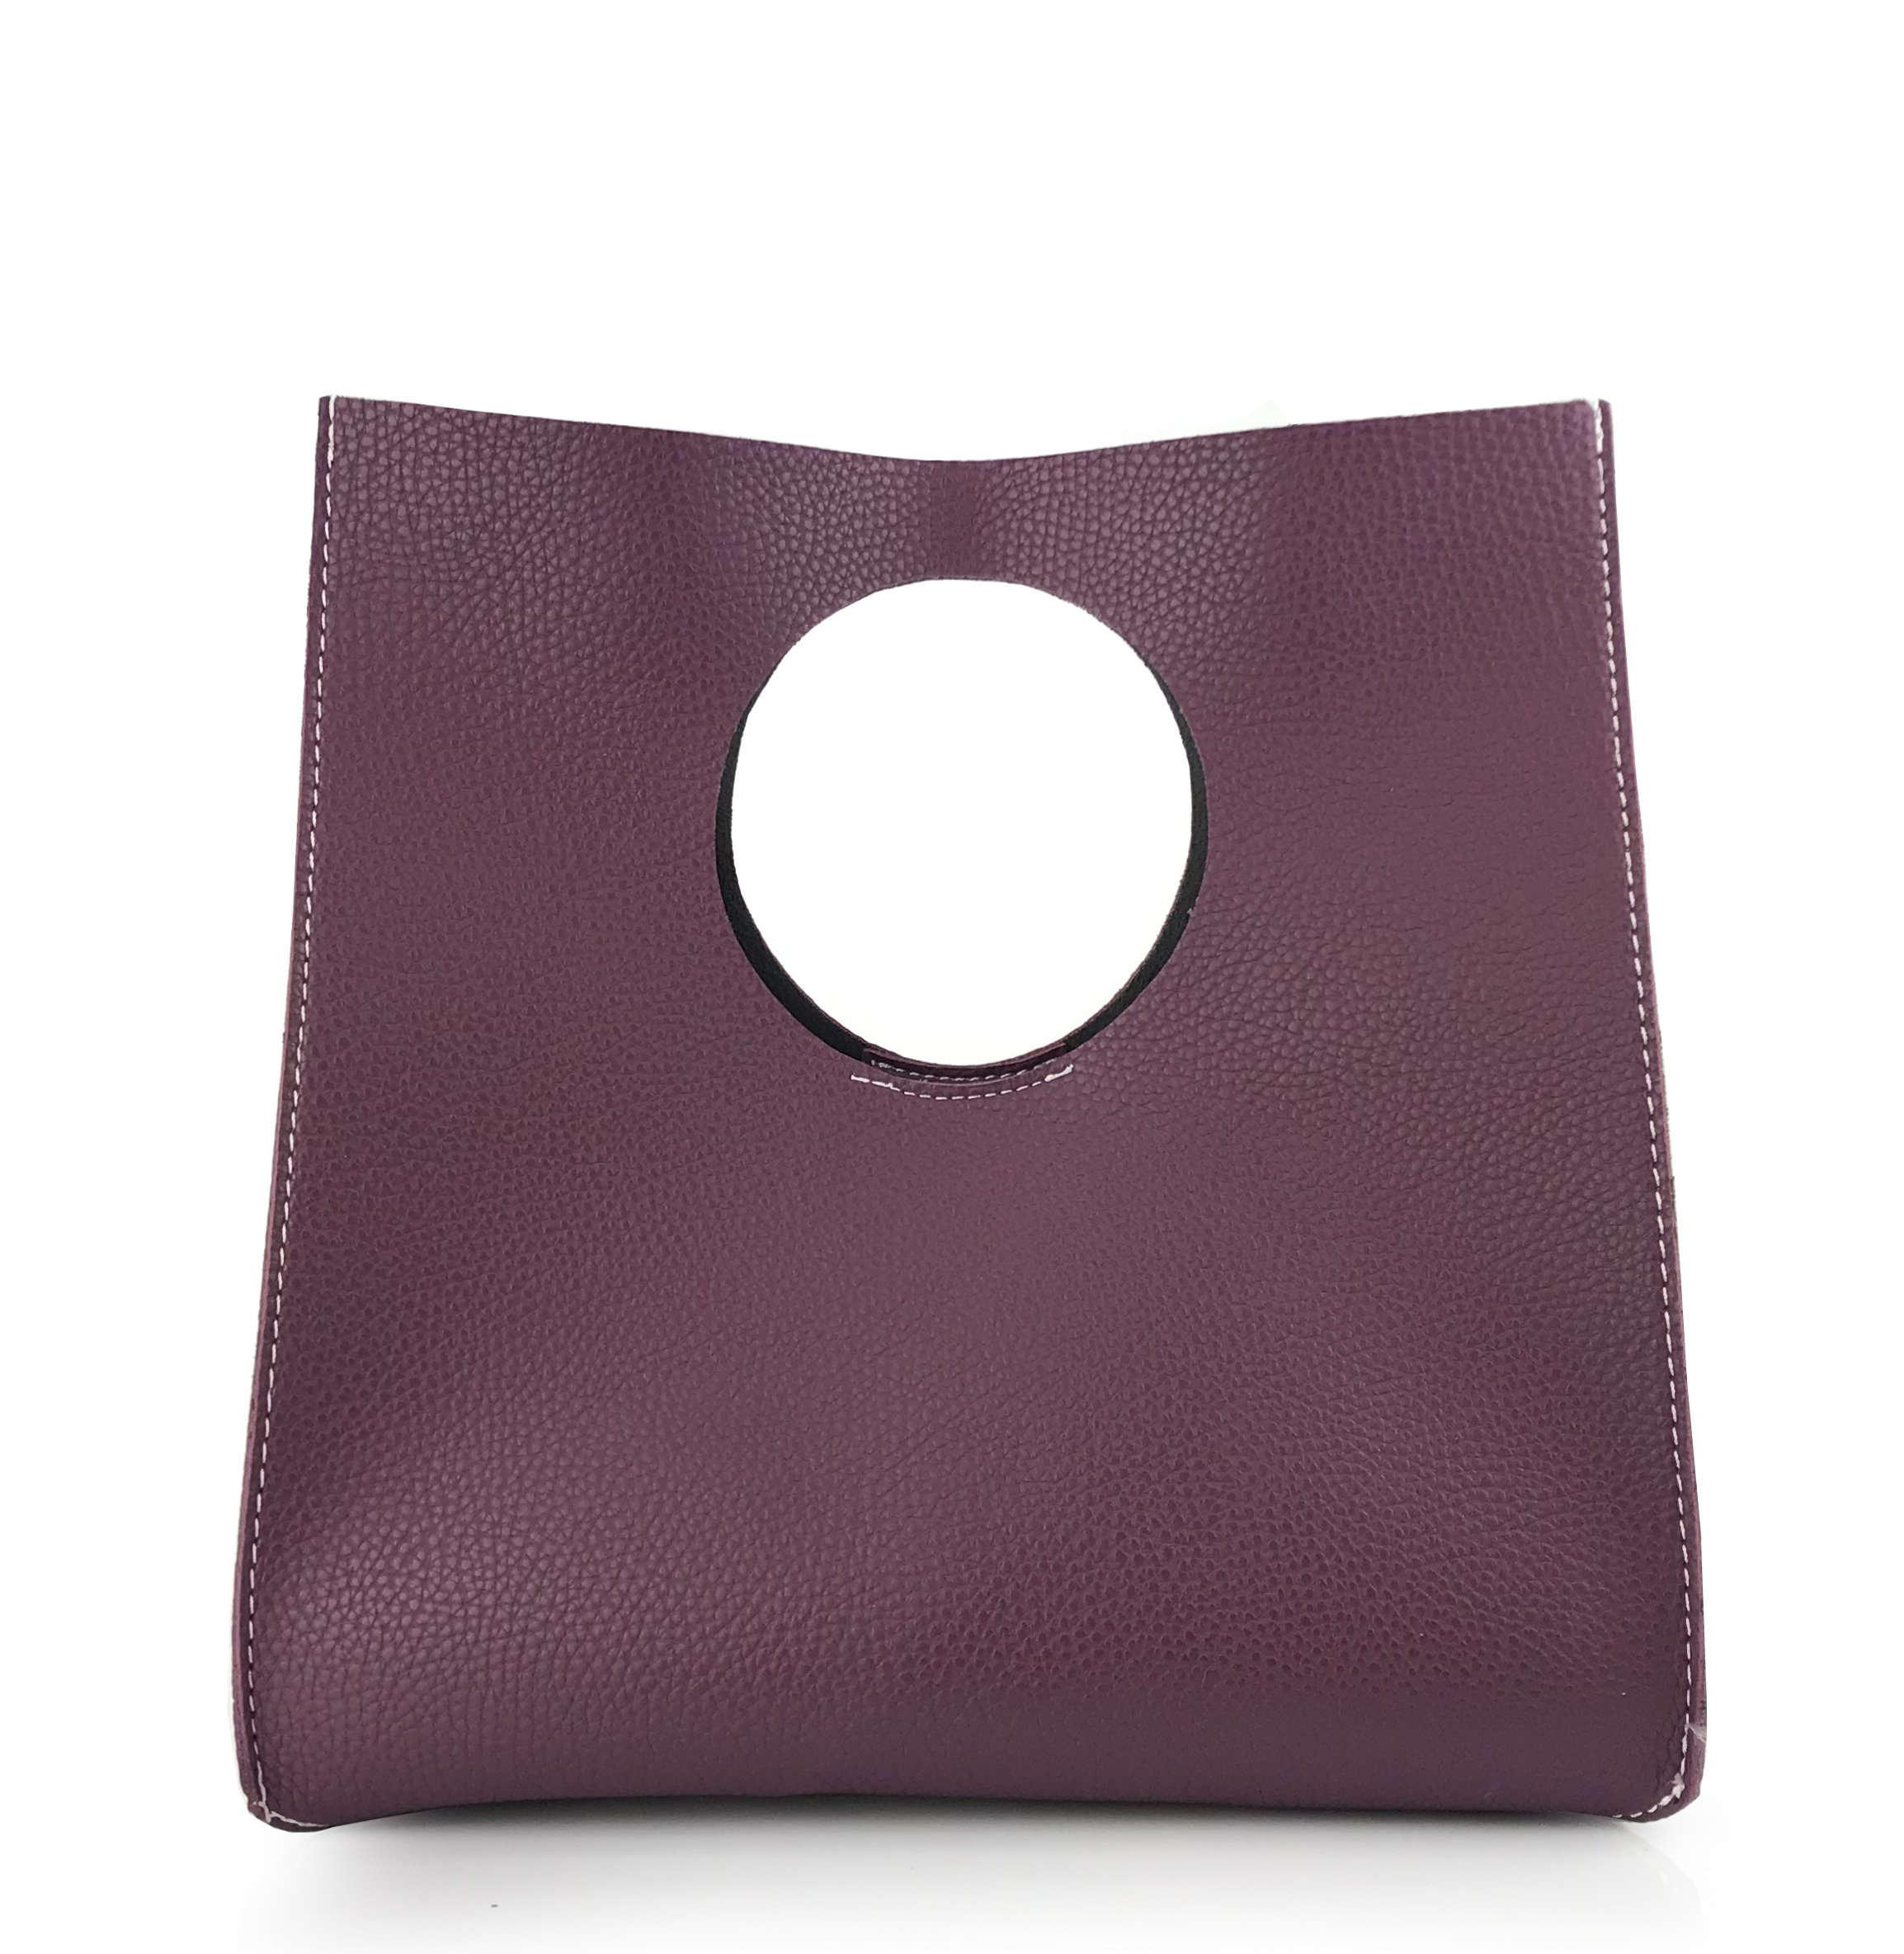 Hoxis Vintage Minimalist Style Soft Pu Leather Handbag Clutch Small Tote (violet)